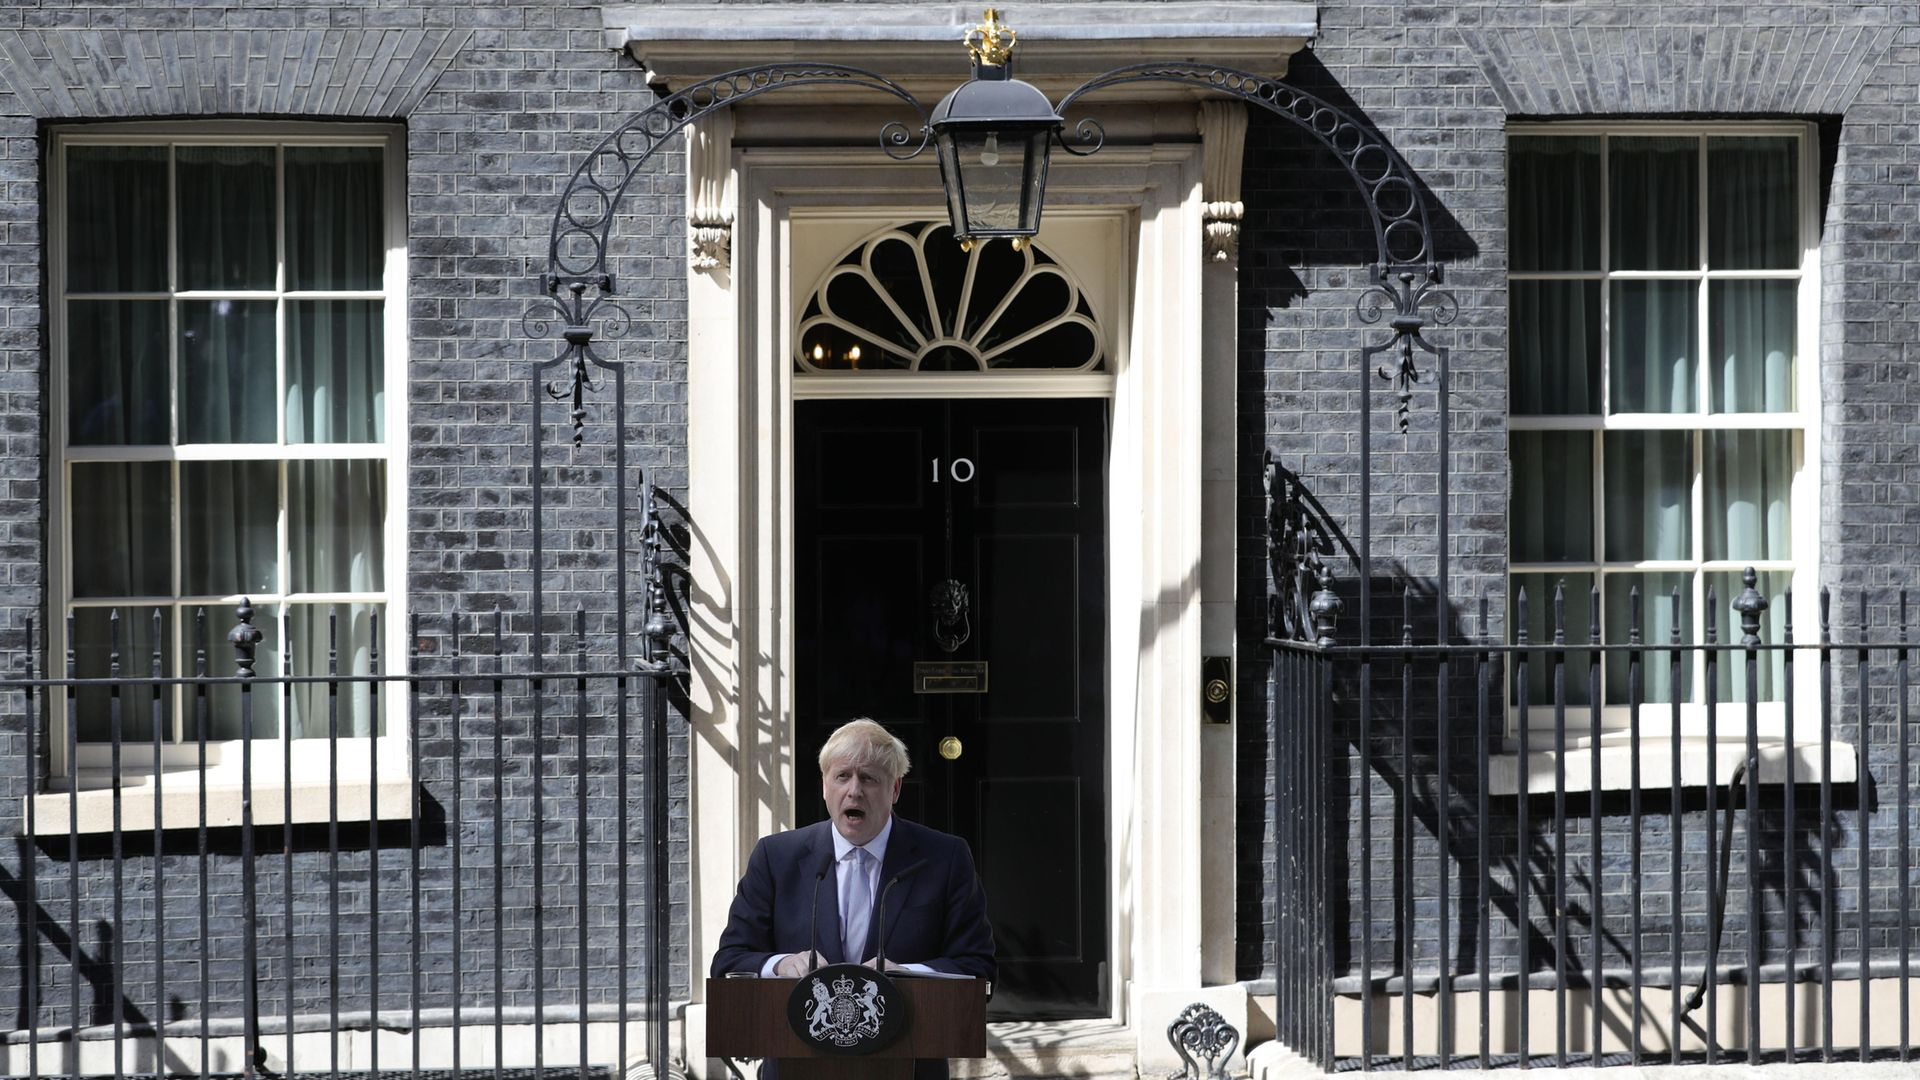 New Prime Minister Boris Johnson makes a speech outside 10 Downing Street - Credit: PA